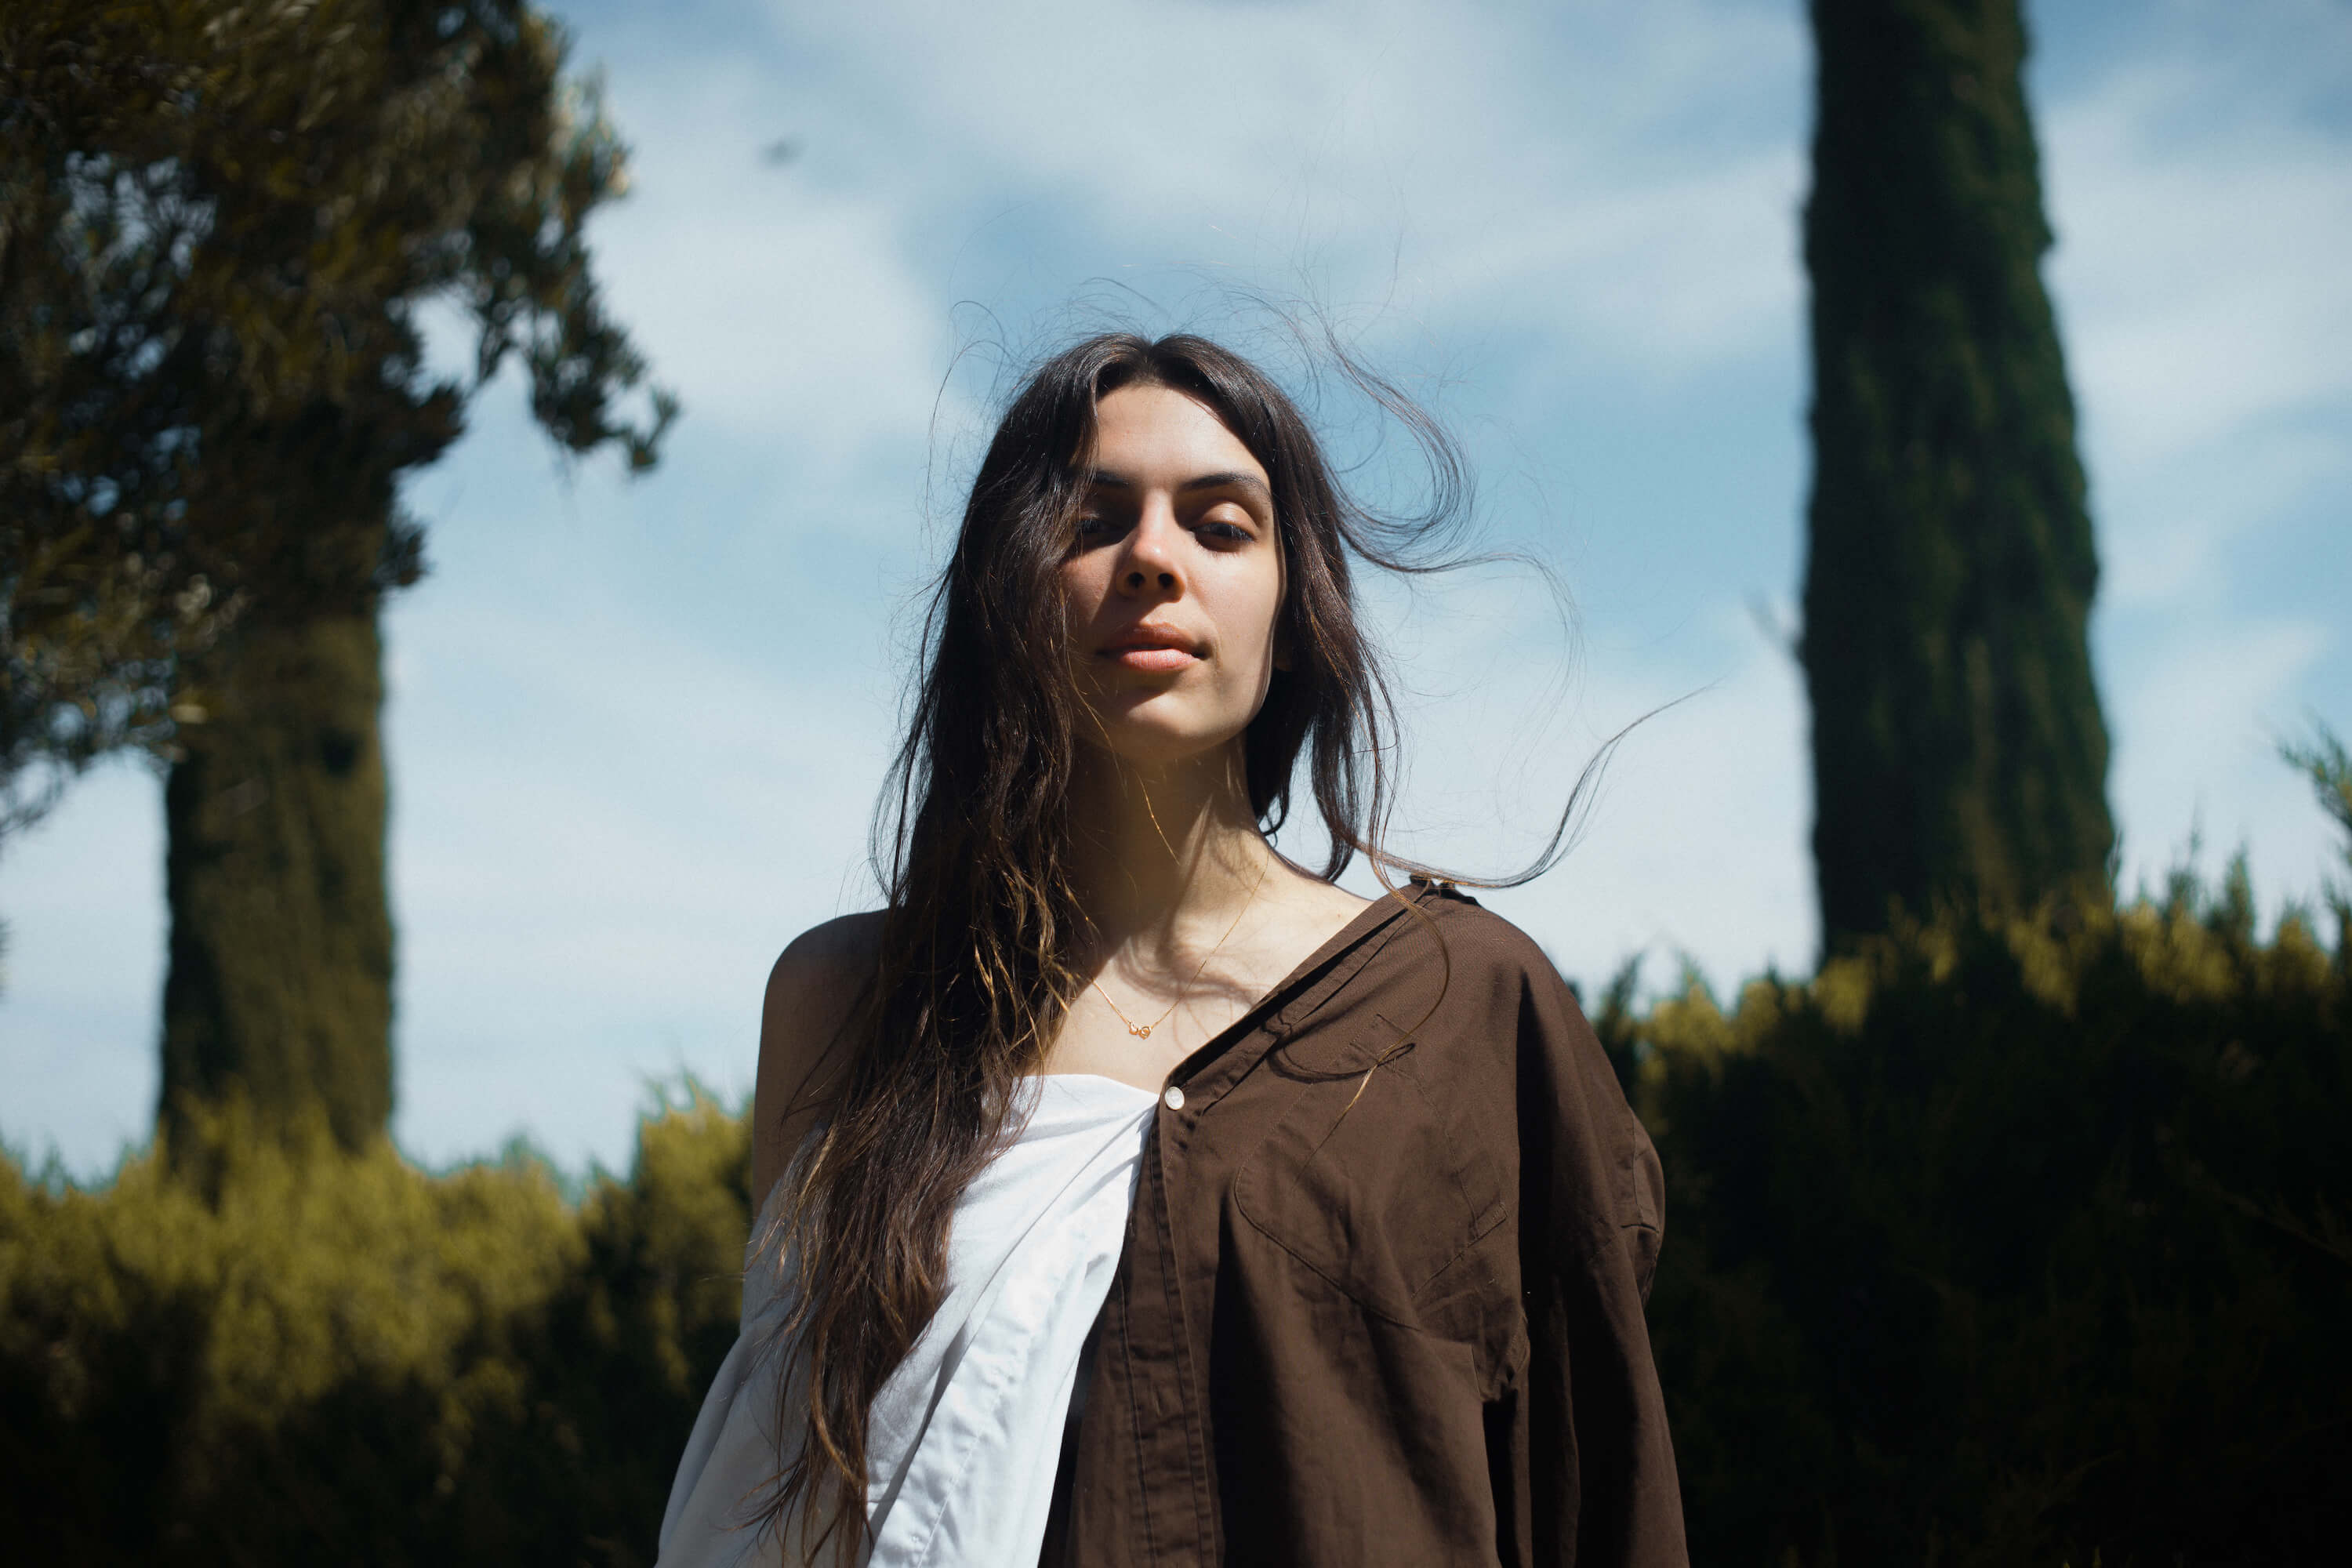 Julie Byrne on living transiently and capturing her 'inner dictation'